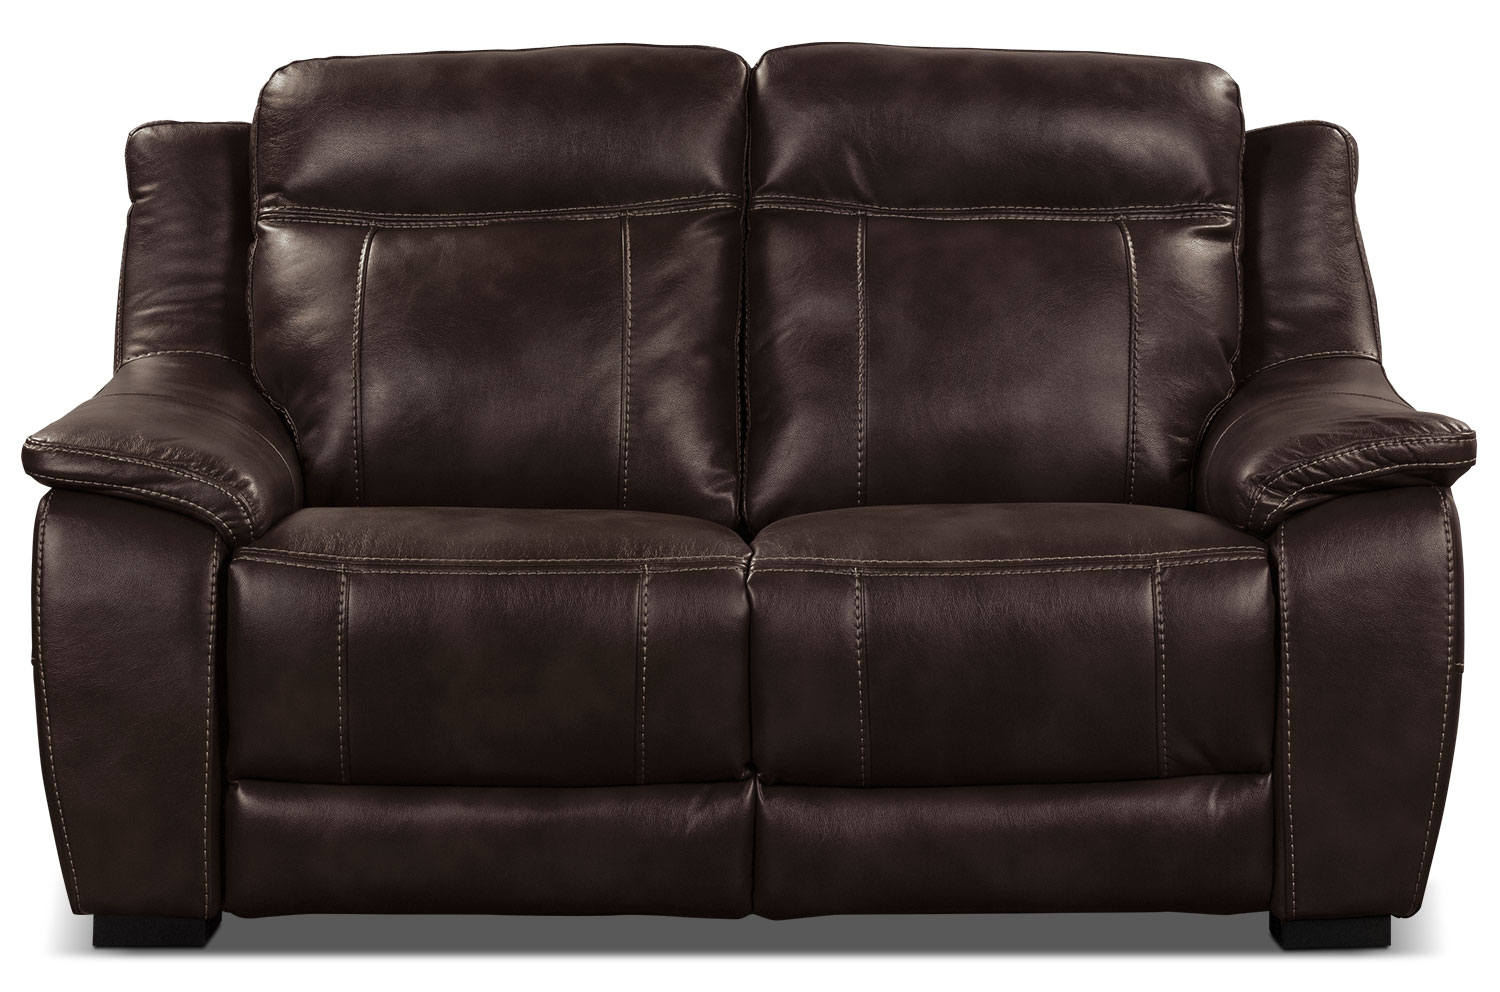 Living Room Furniture - Novo Leather-Look Fabric Loveseat – Brown